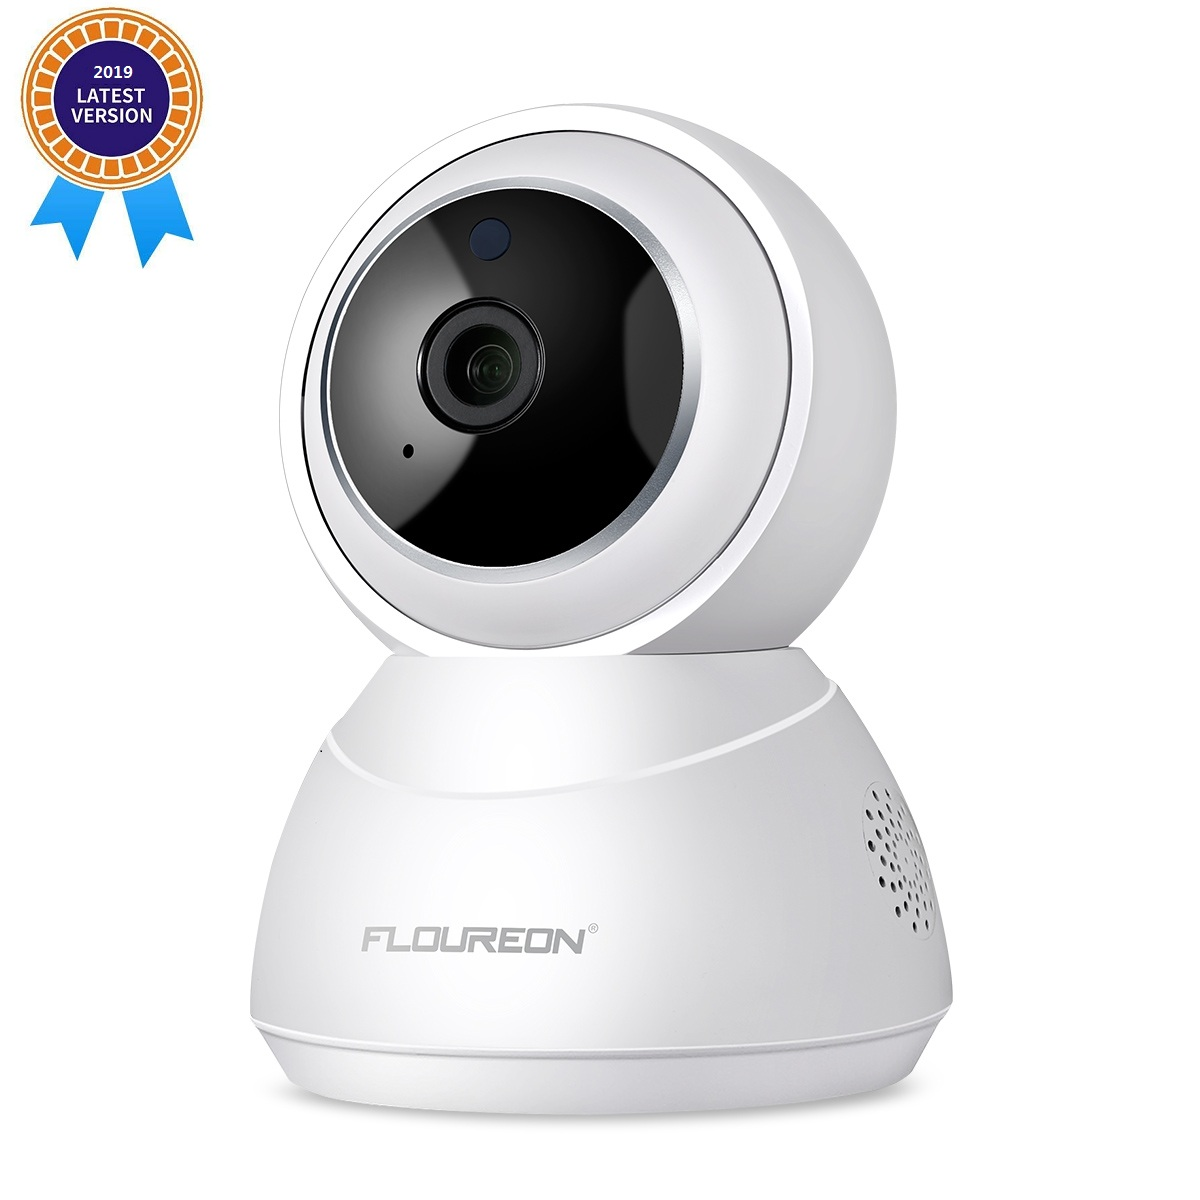 FLOUREON YI Cloud Home Camera, 1080P HD Wireless IP Security Camera Pan/Tilt/Zoom Indoor Surveillance System with Smart Tracking Night Vision Two Way Audio for Baby Monitor Pet Camera Home Security US